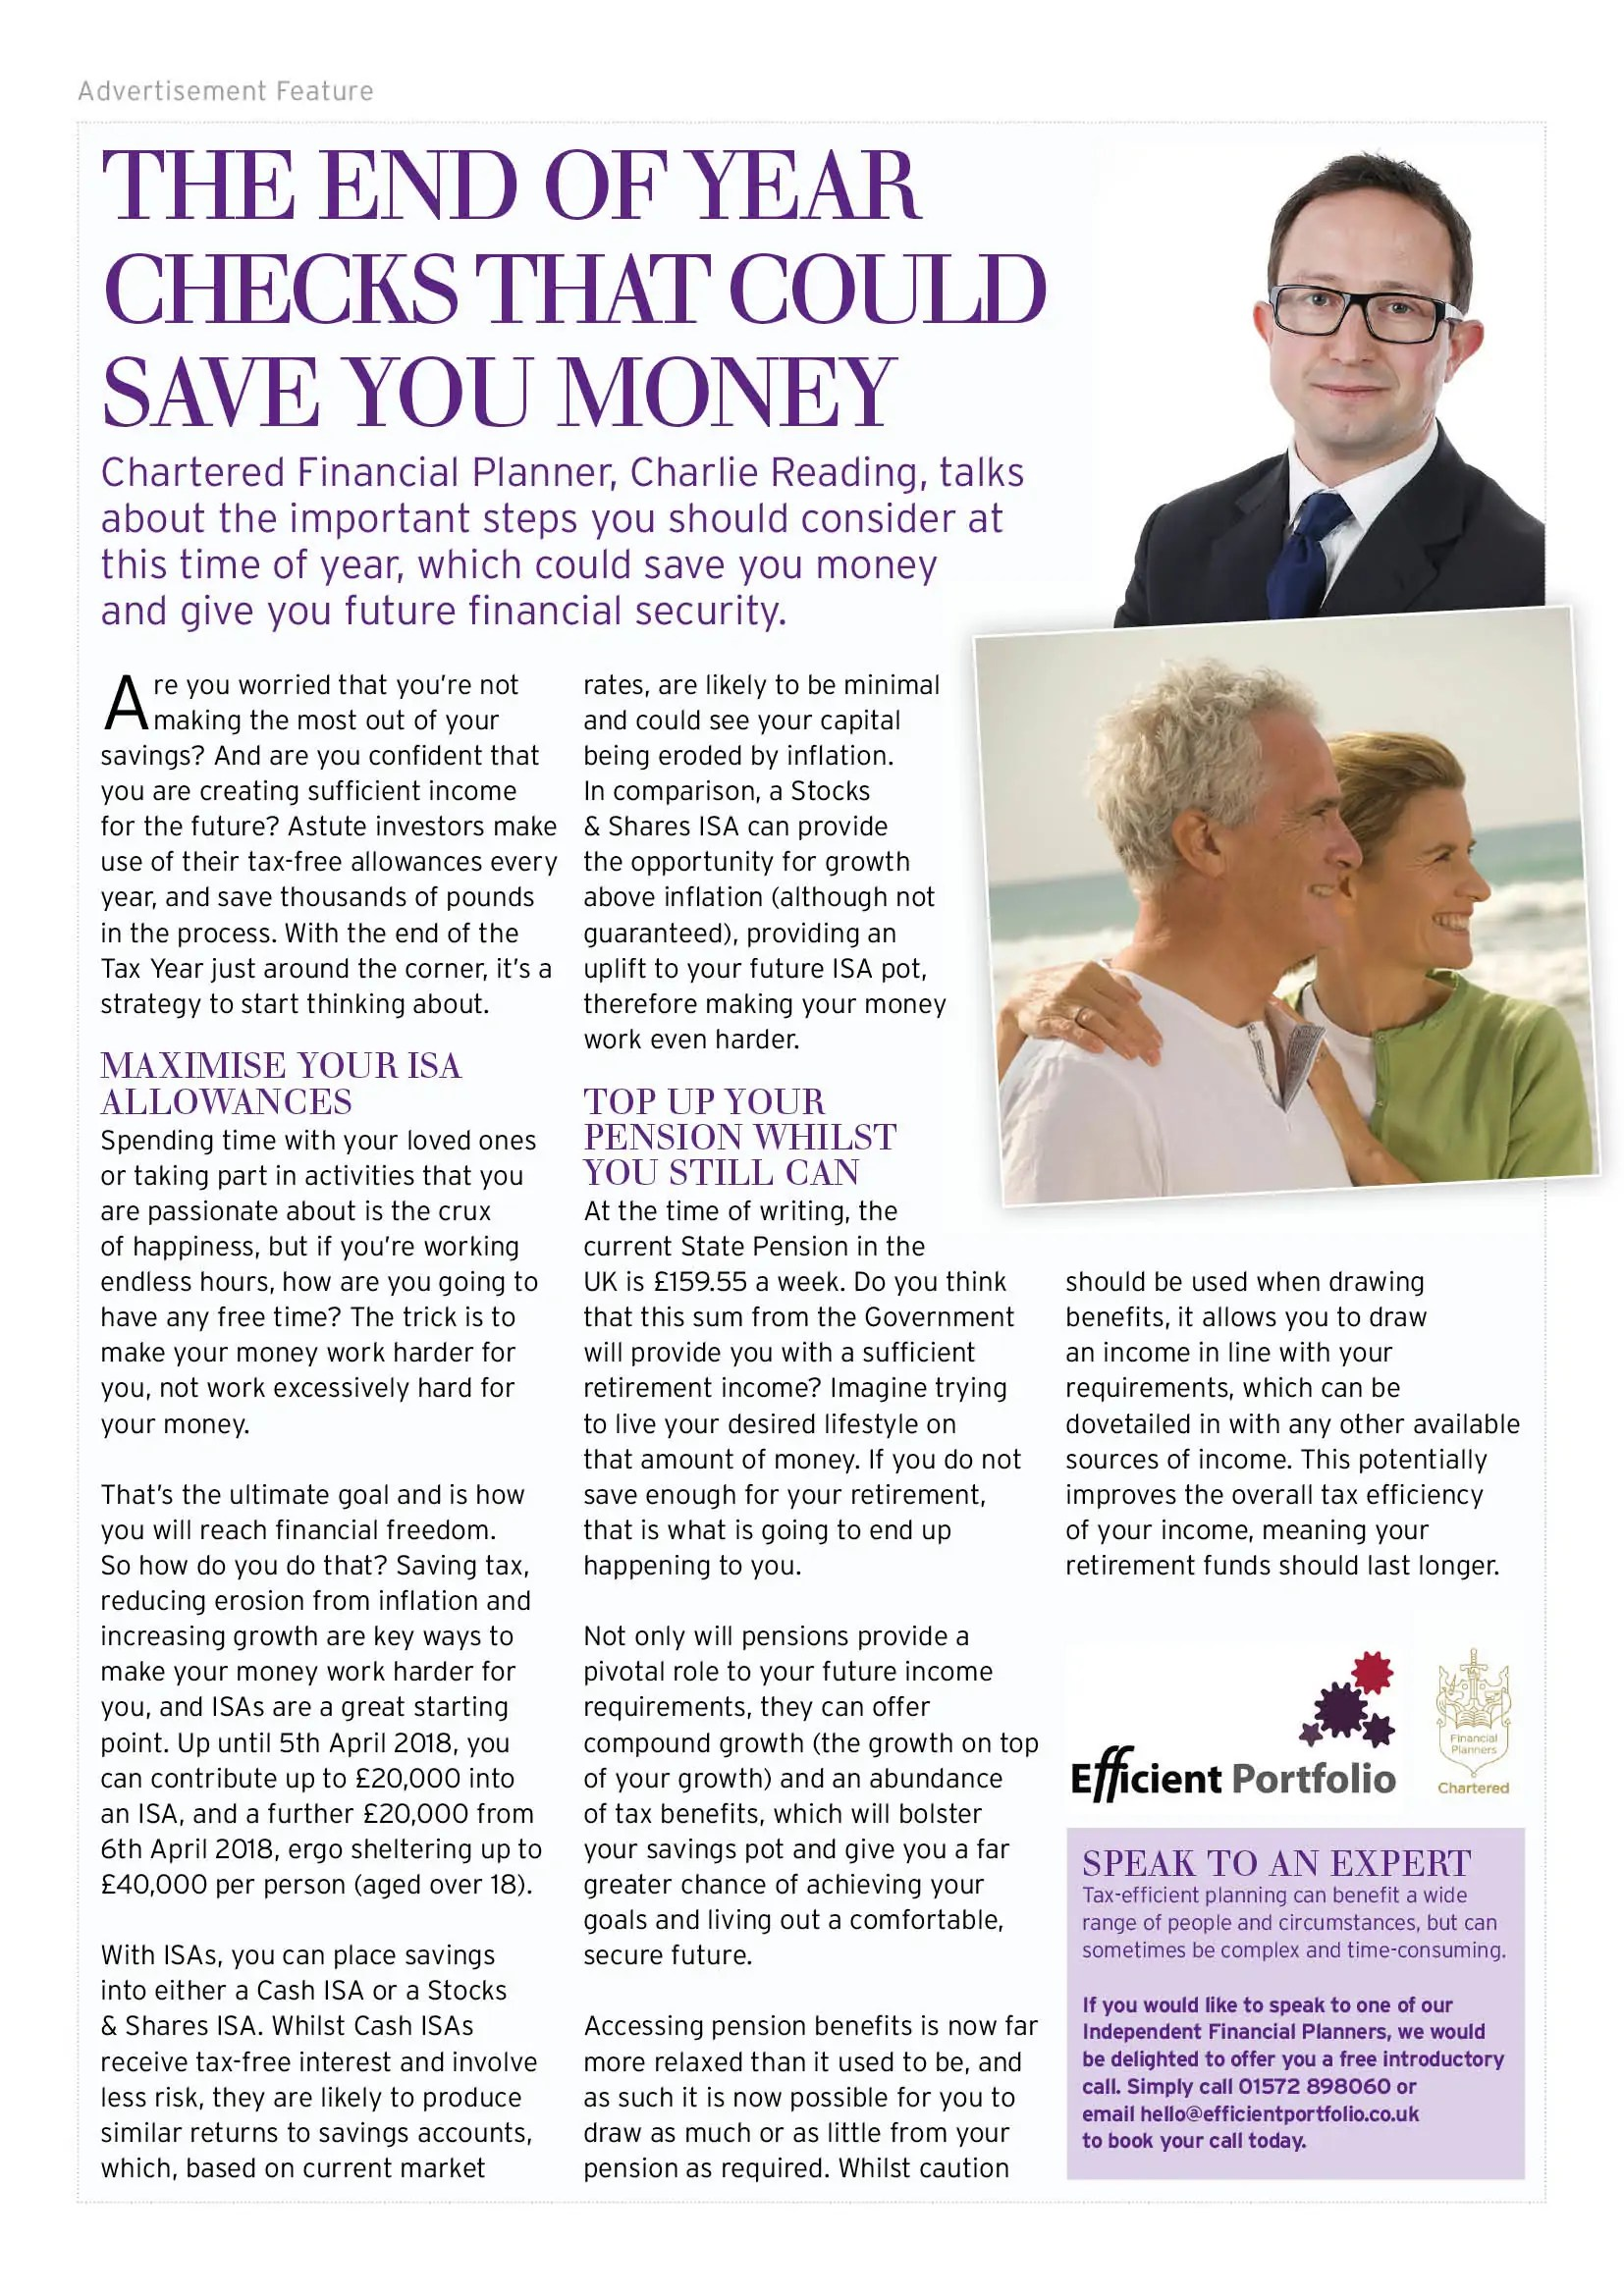 Rutland Living Efficient Portfolio Article Feb